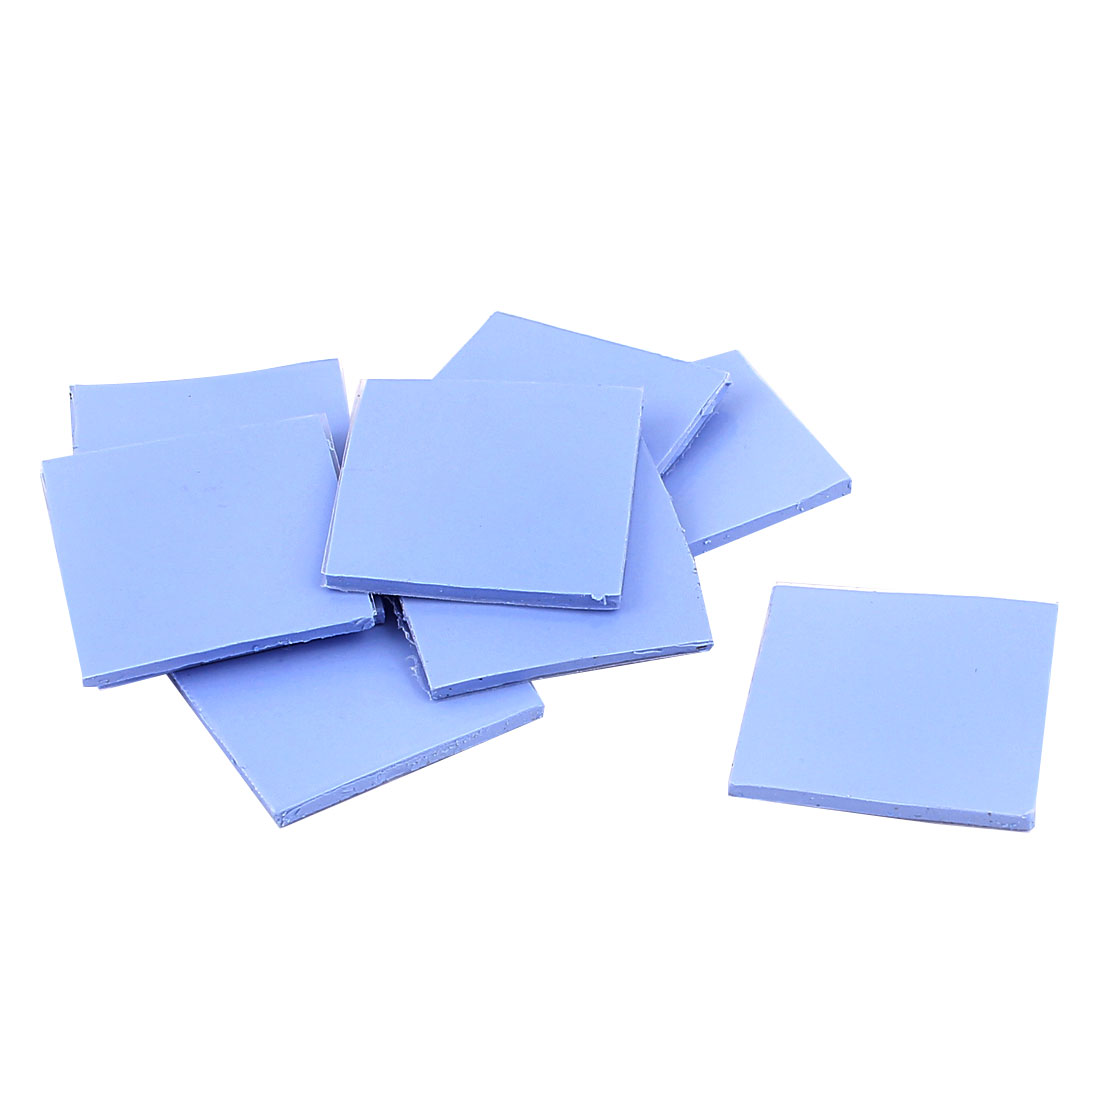 10 Pcs Blue Thermal Pad GPU CPU Heatsink Cooling Conductive Silicone 30mmx30mmx2mm